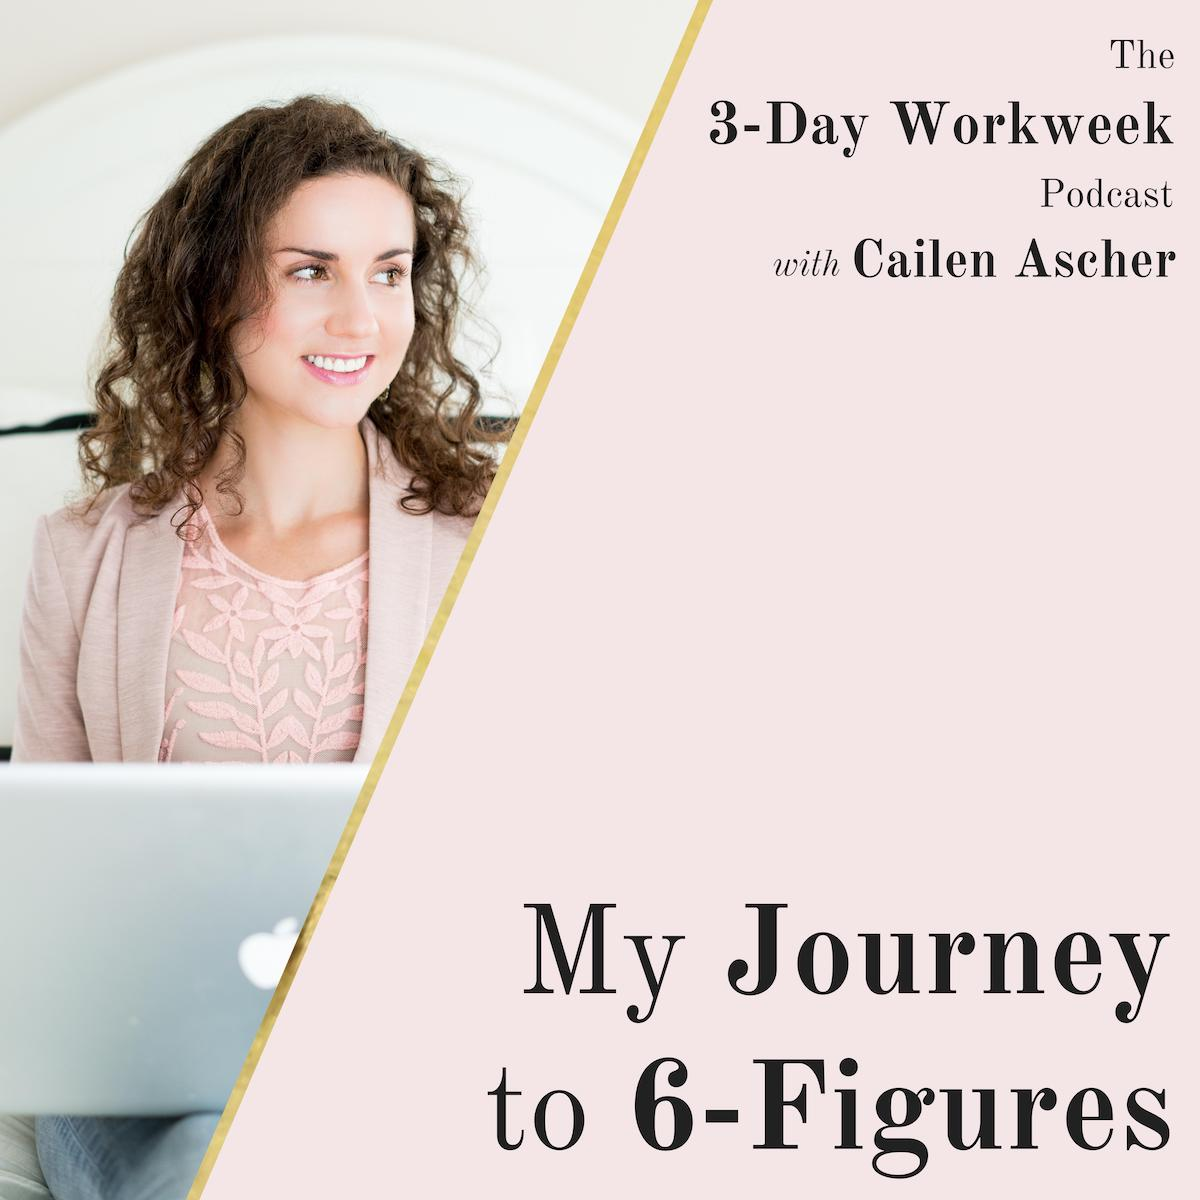 The 3-Day Workweek Podcast with Cailen Ascher - 2019-06-02 - My Journey to 6-Figures.jpg